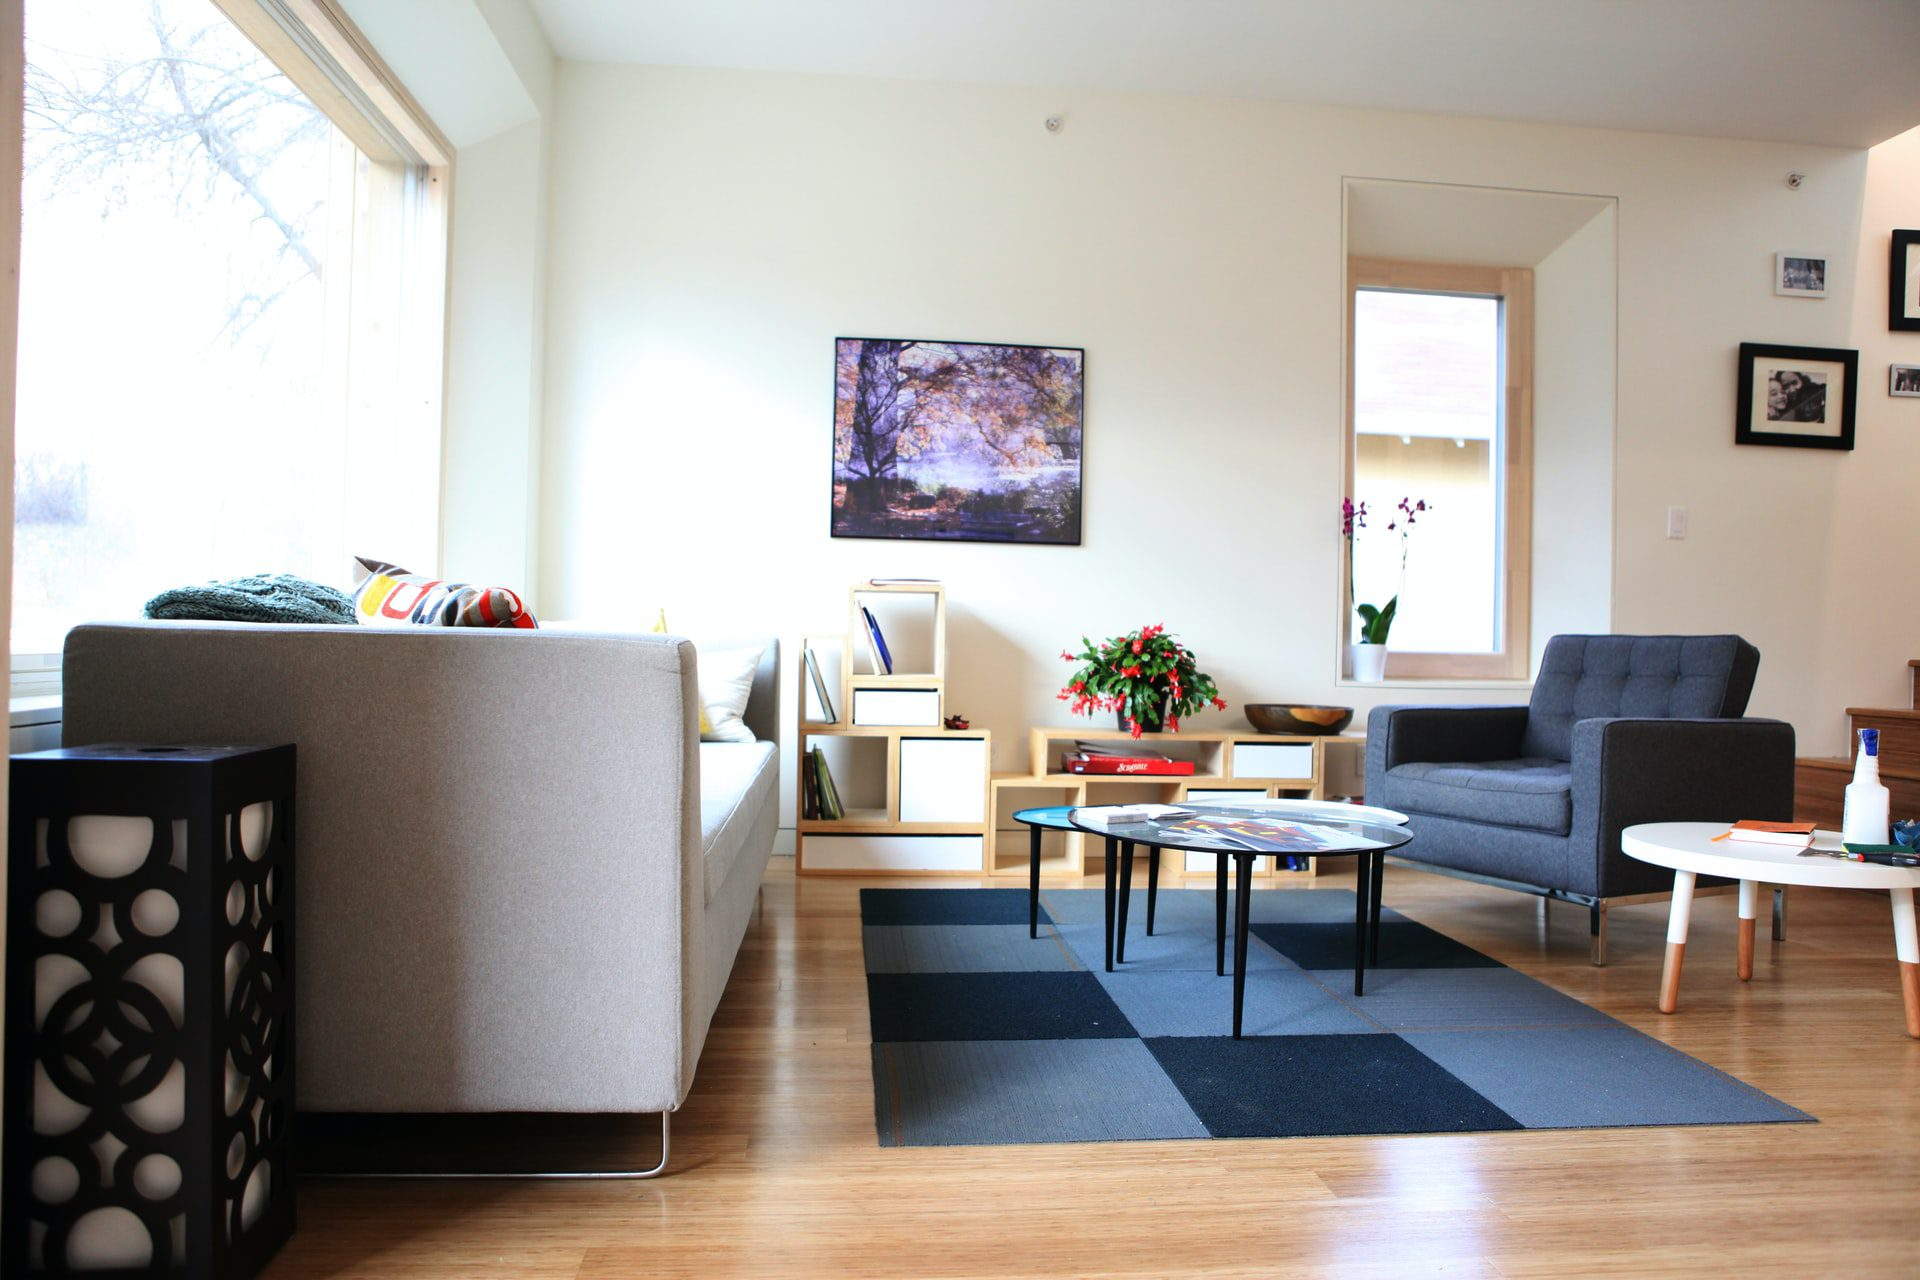 4 Places of Your Home that You Must Make Stand Out